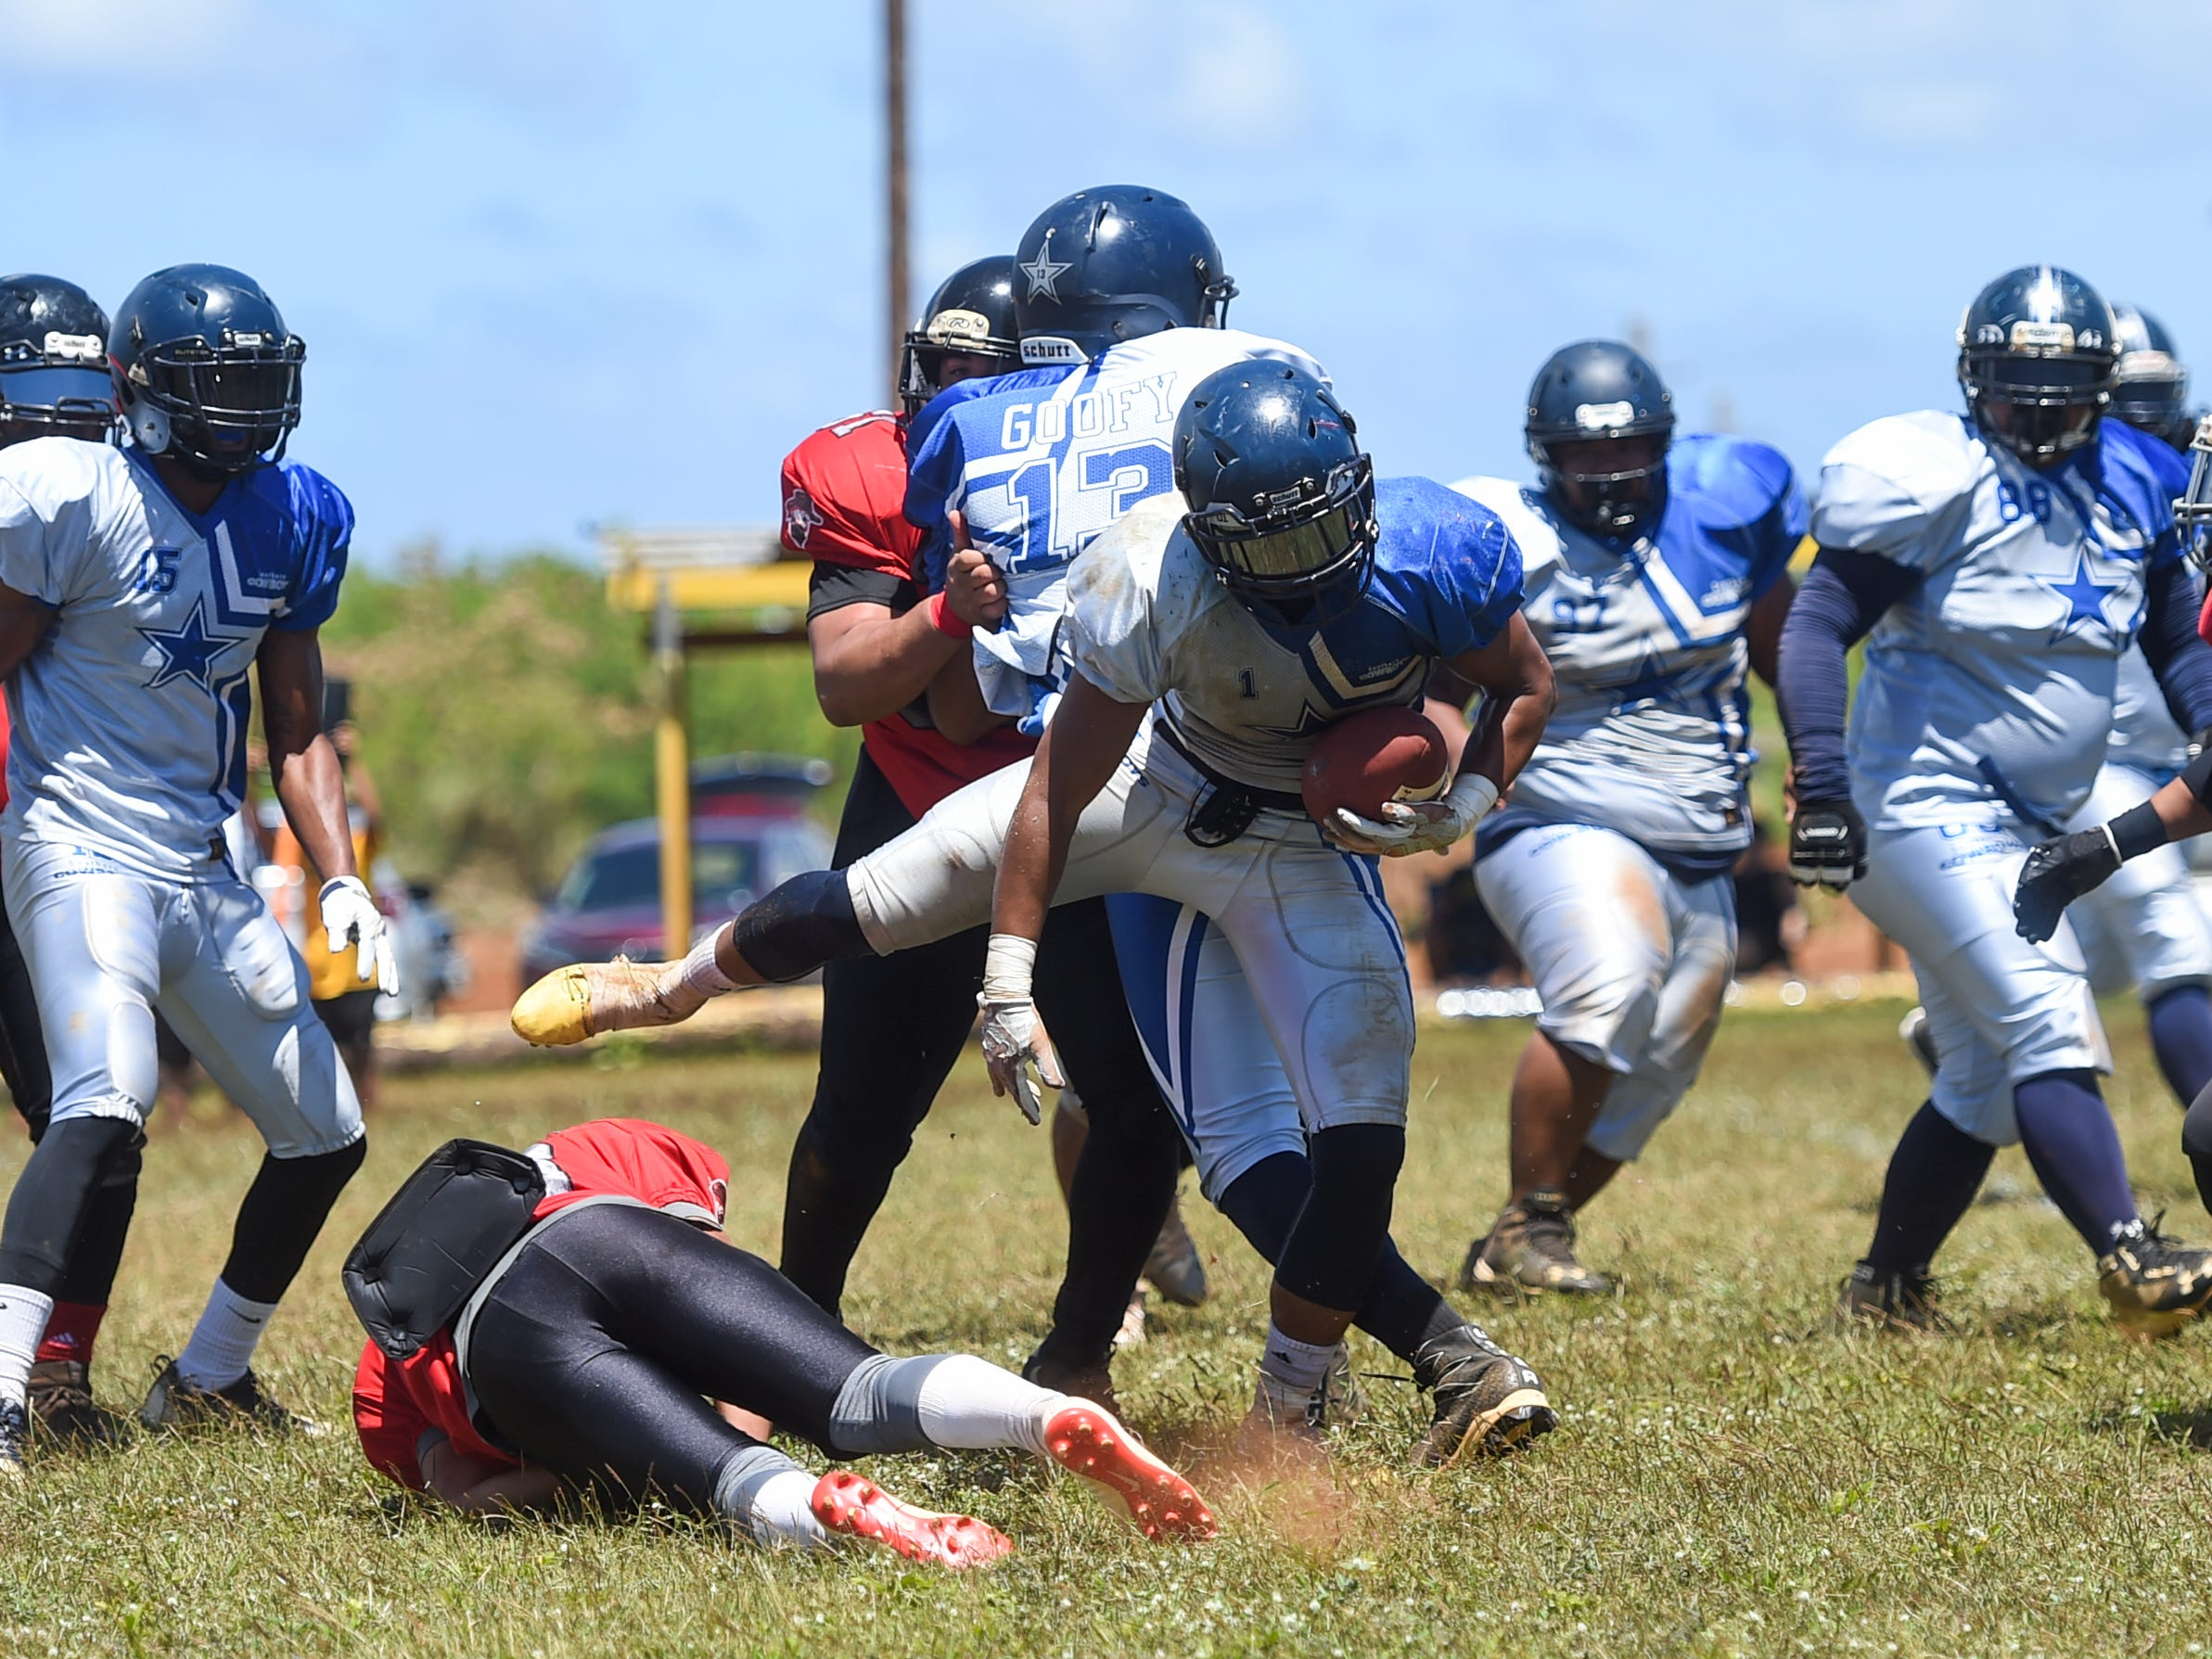 The Southern Cowboys' Connie Toney (1) avoids a tackle during a Budweiser Guahan Varsity Football League game against the Outlaws at Eagles Field in Mangilao, March 9, 2019.